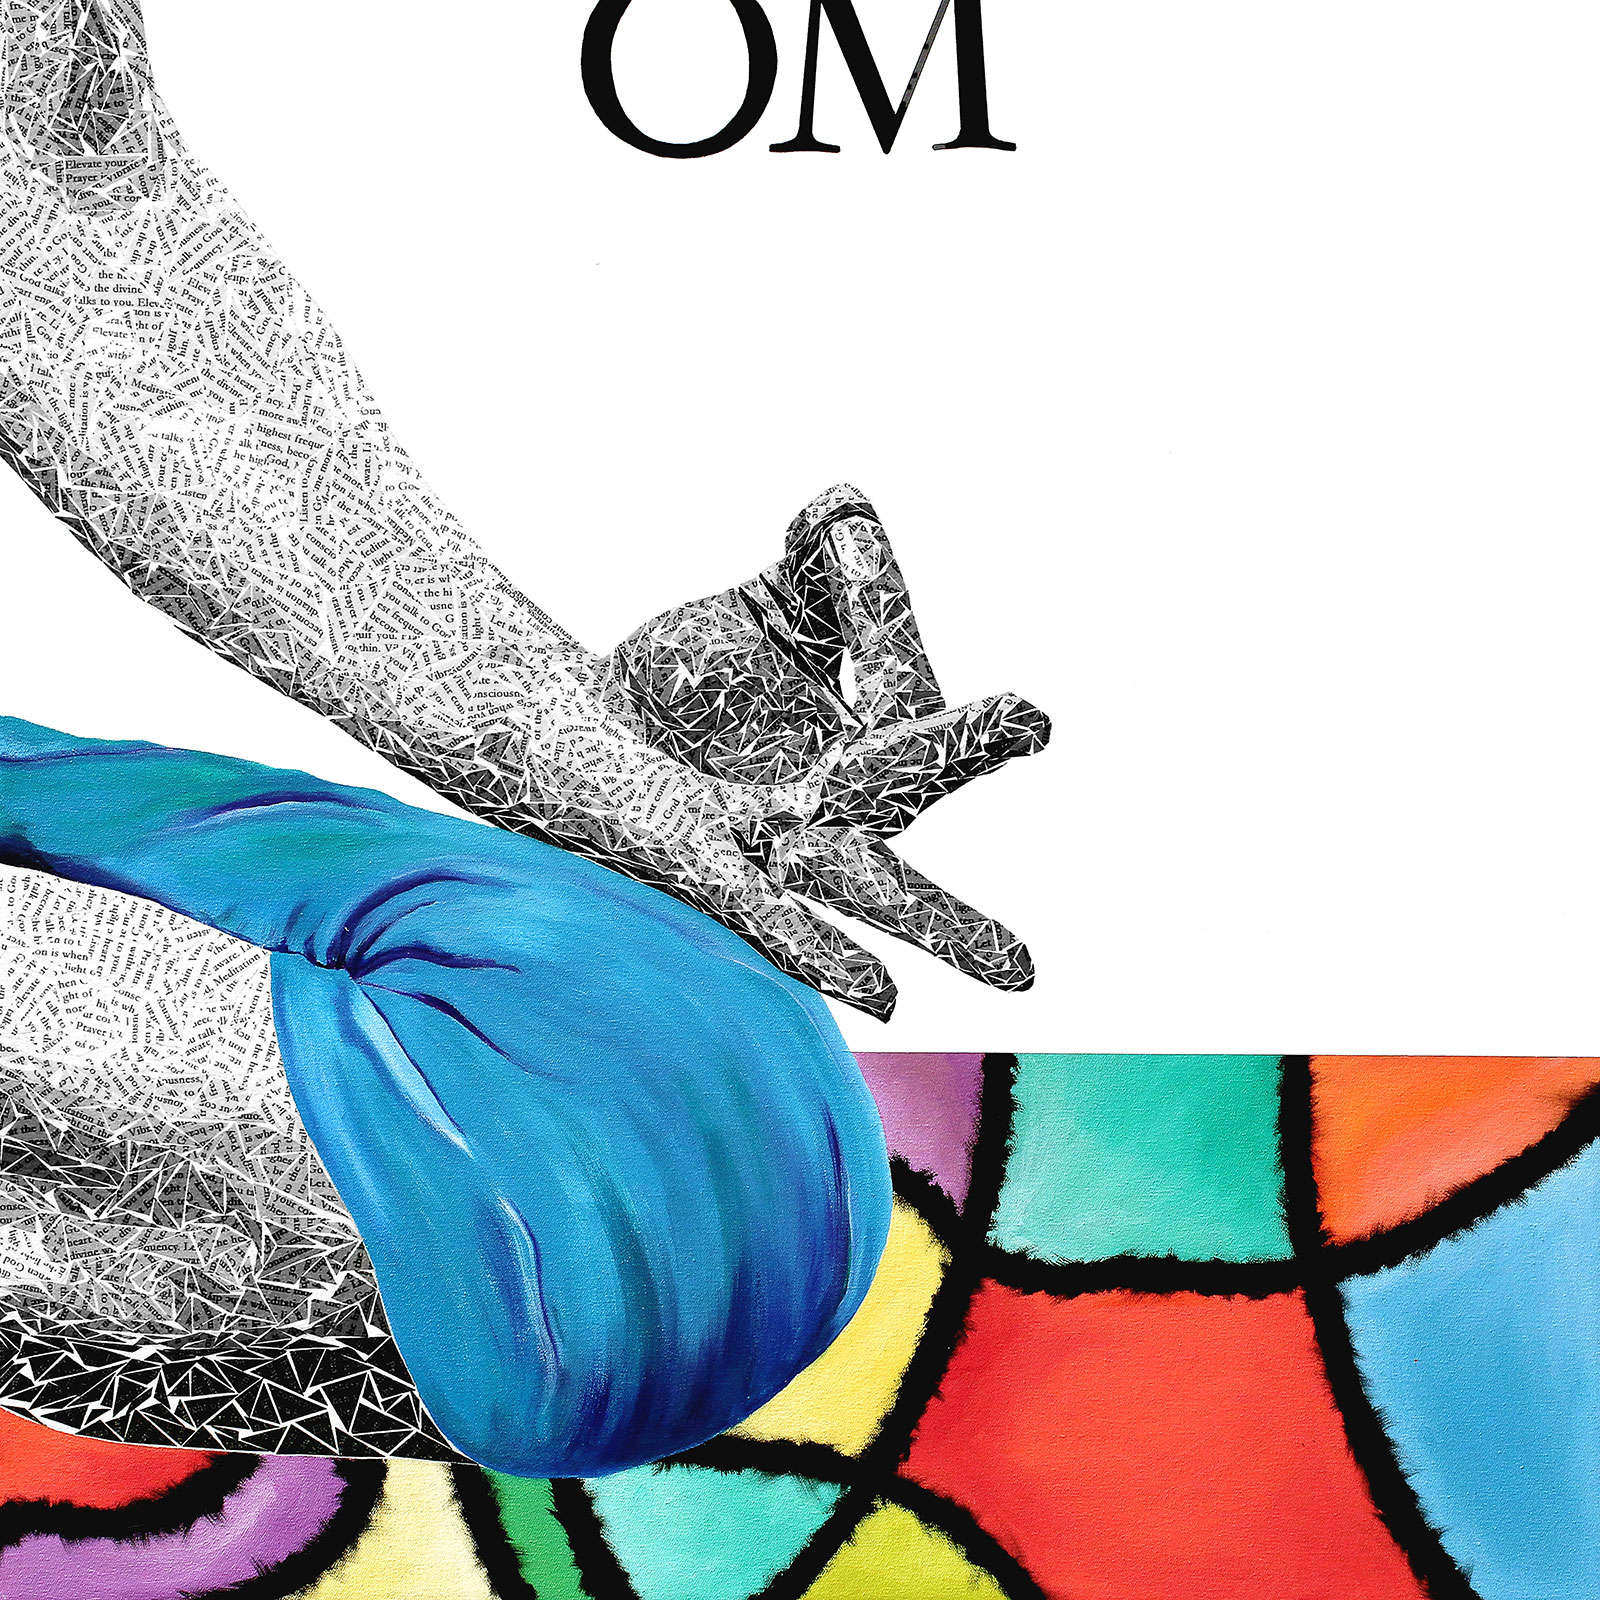 OM original artwork